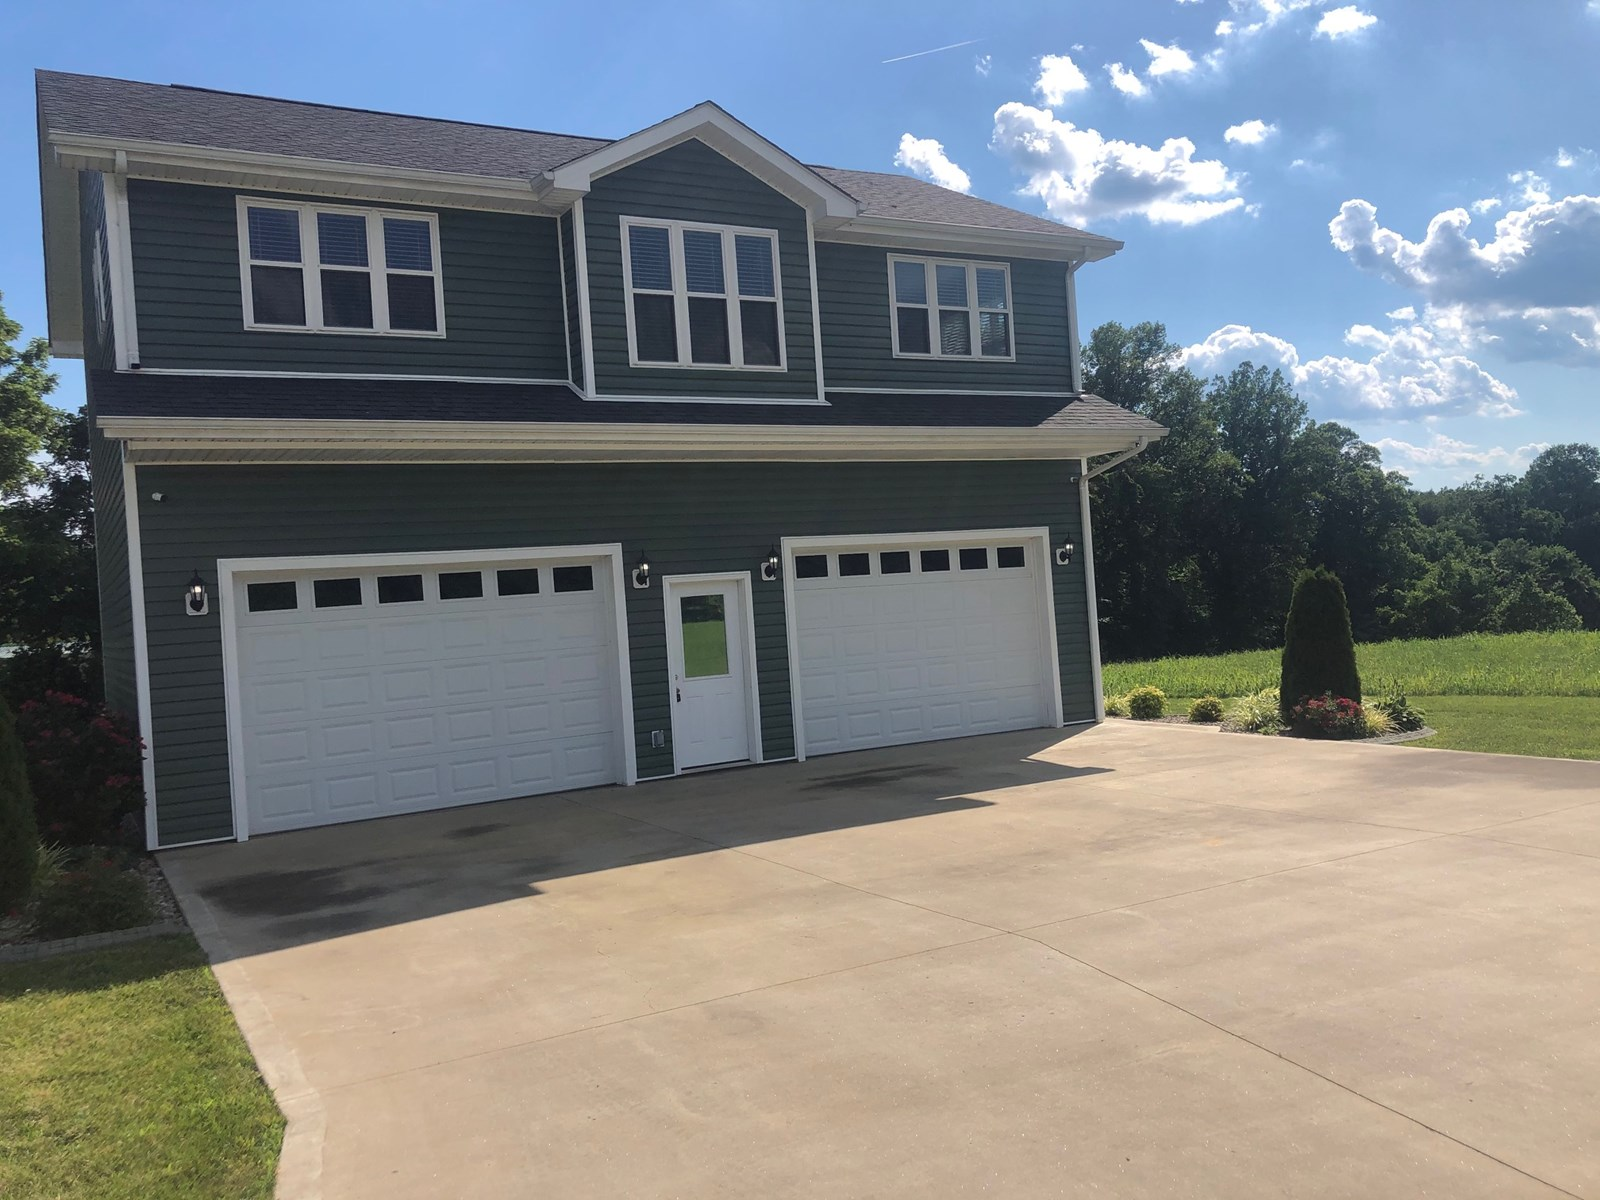 Home for Sale in Albany, Kentucky